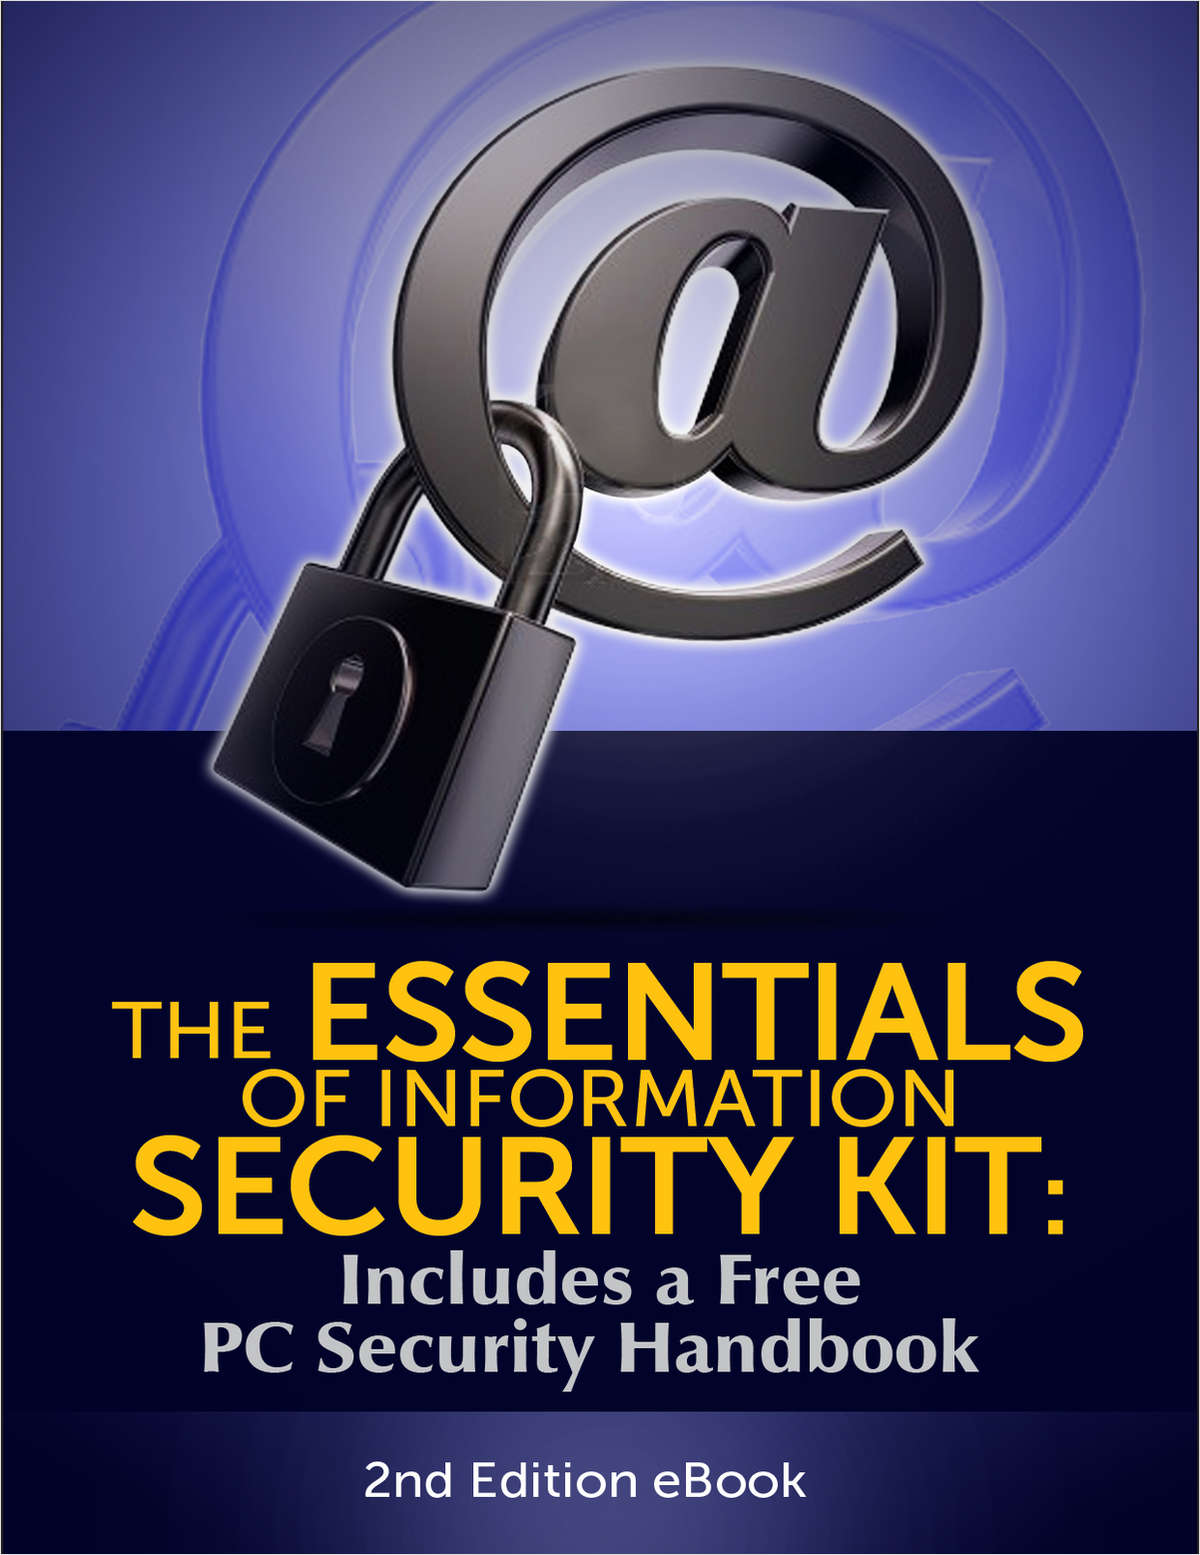 The essentials of information security kit includes a free pc the essentials of information security kit includes a free pc security handbook 2nd edition ebook free tradepub kit fandeluxe Images